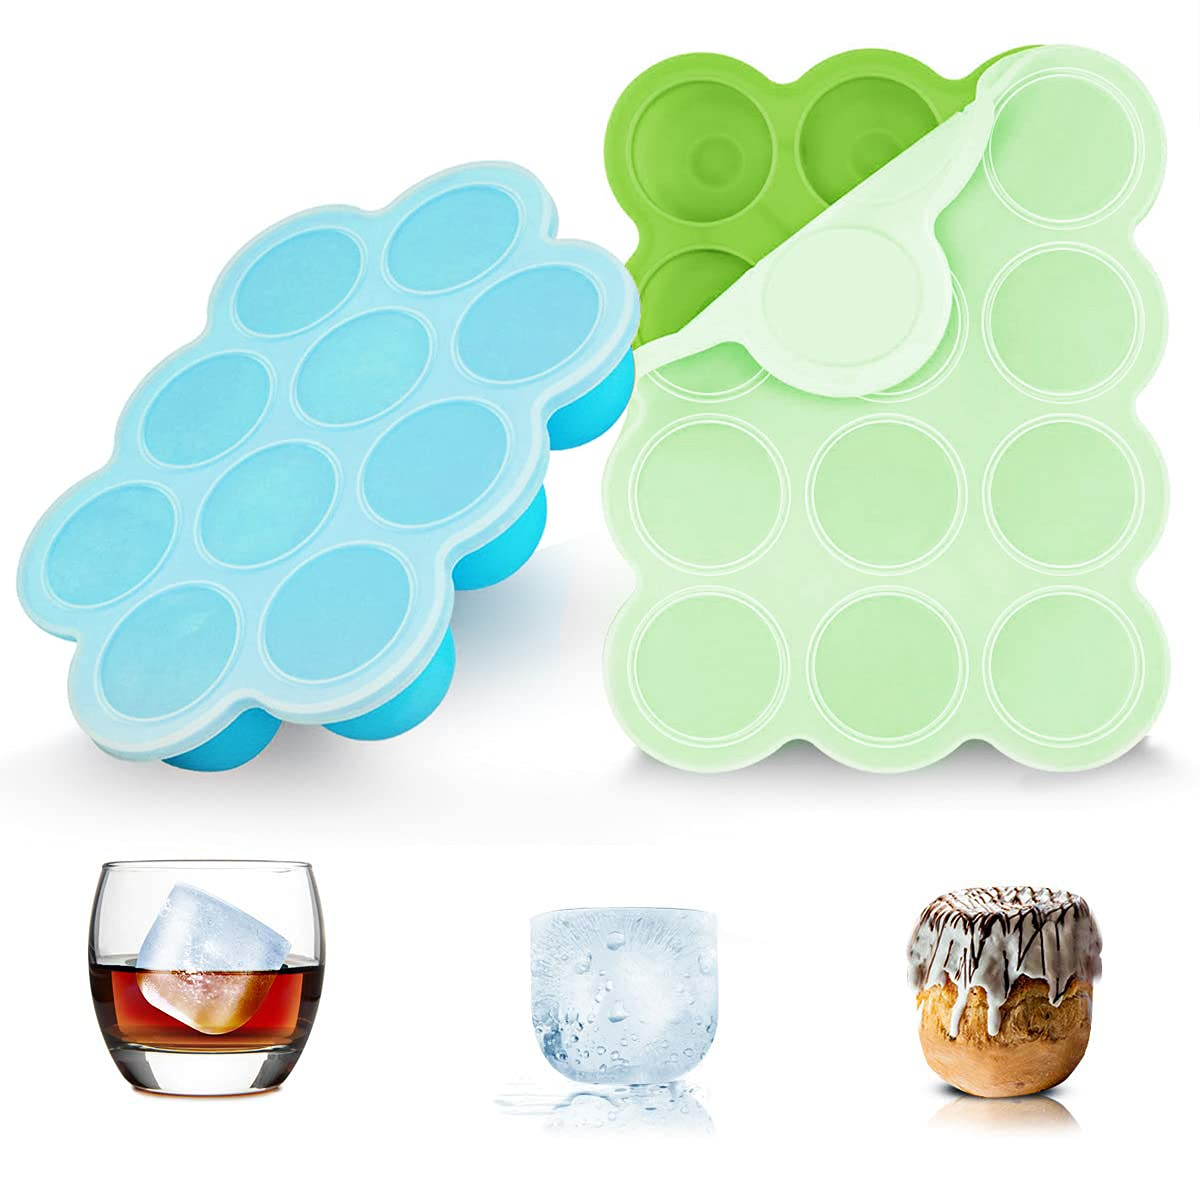 Baby Food Storage Container 2 Packs, 10/12 Hole Silicone Baby Food Freezer Tray with Clip-on Lid , Perfect Food Container for Serving Homemade Healthy Smoothies & Purees(12 Green&10 Blue)